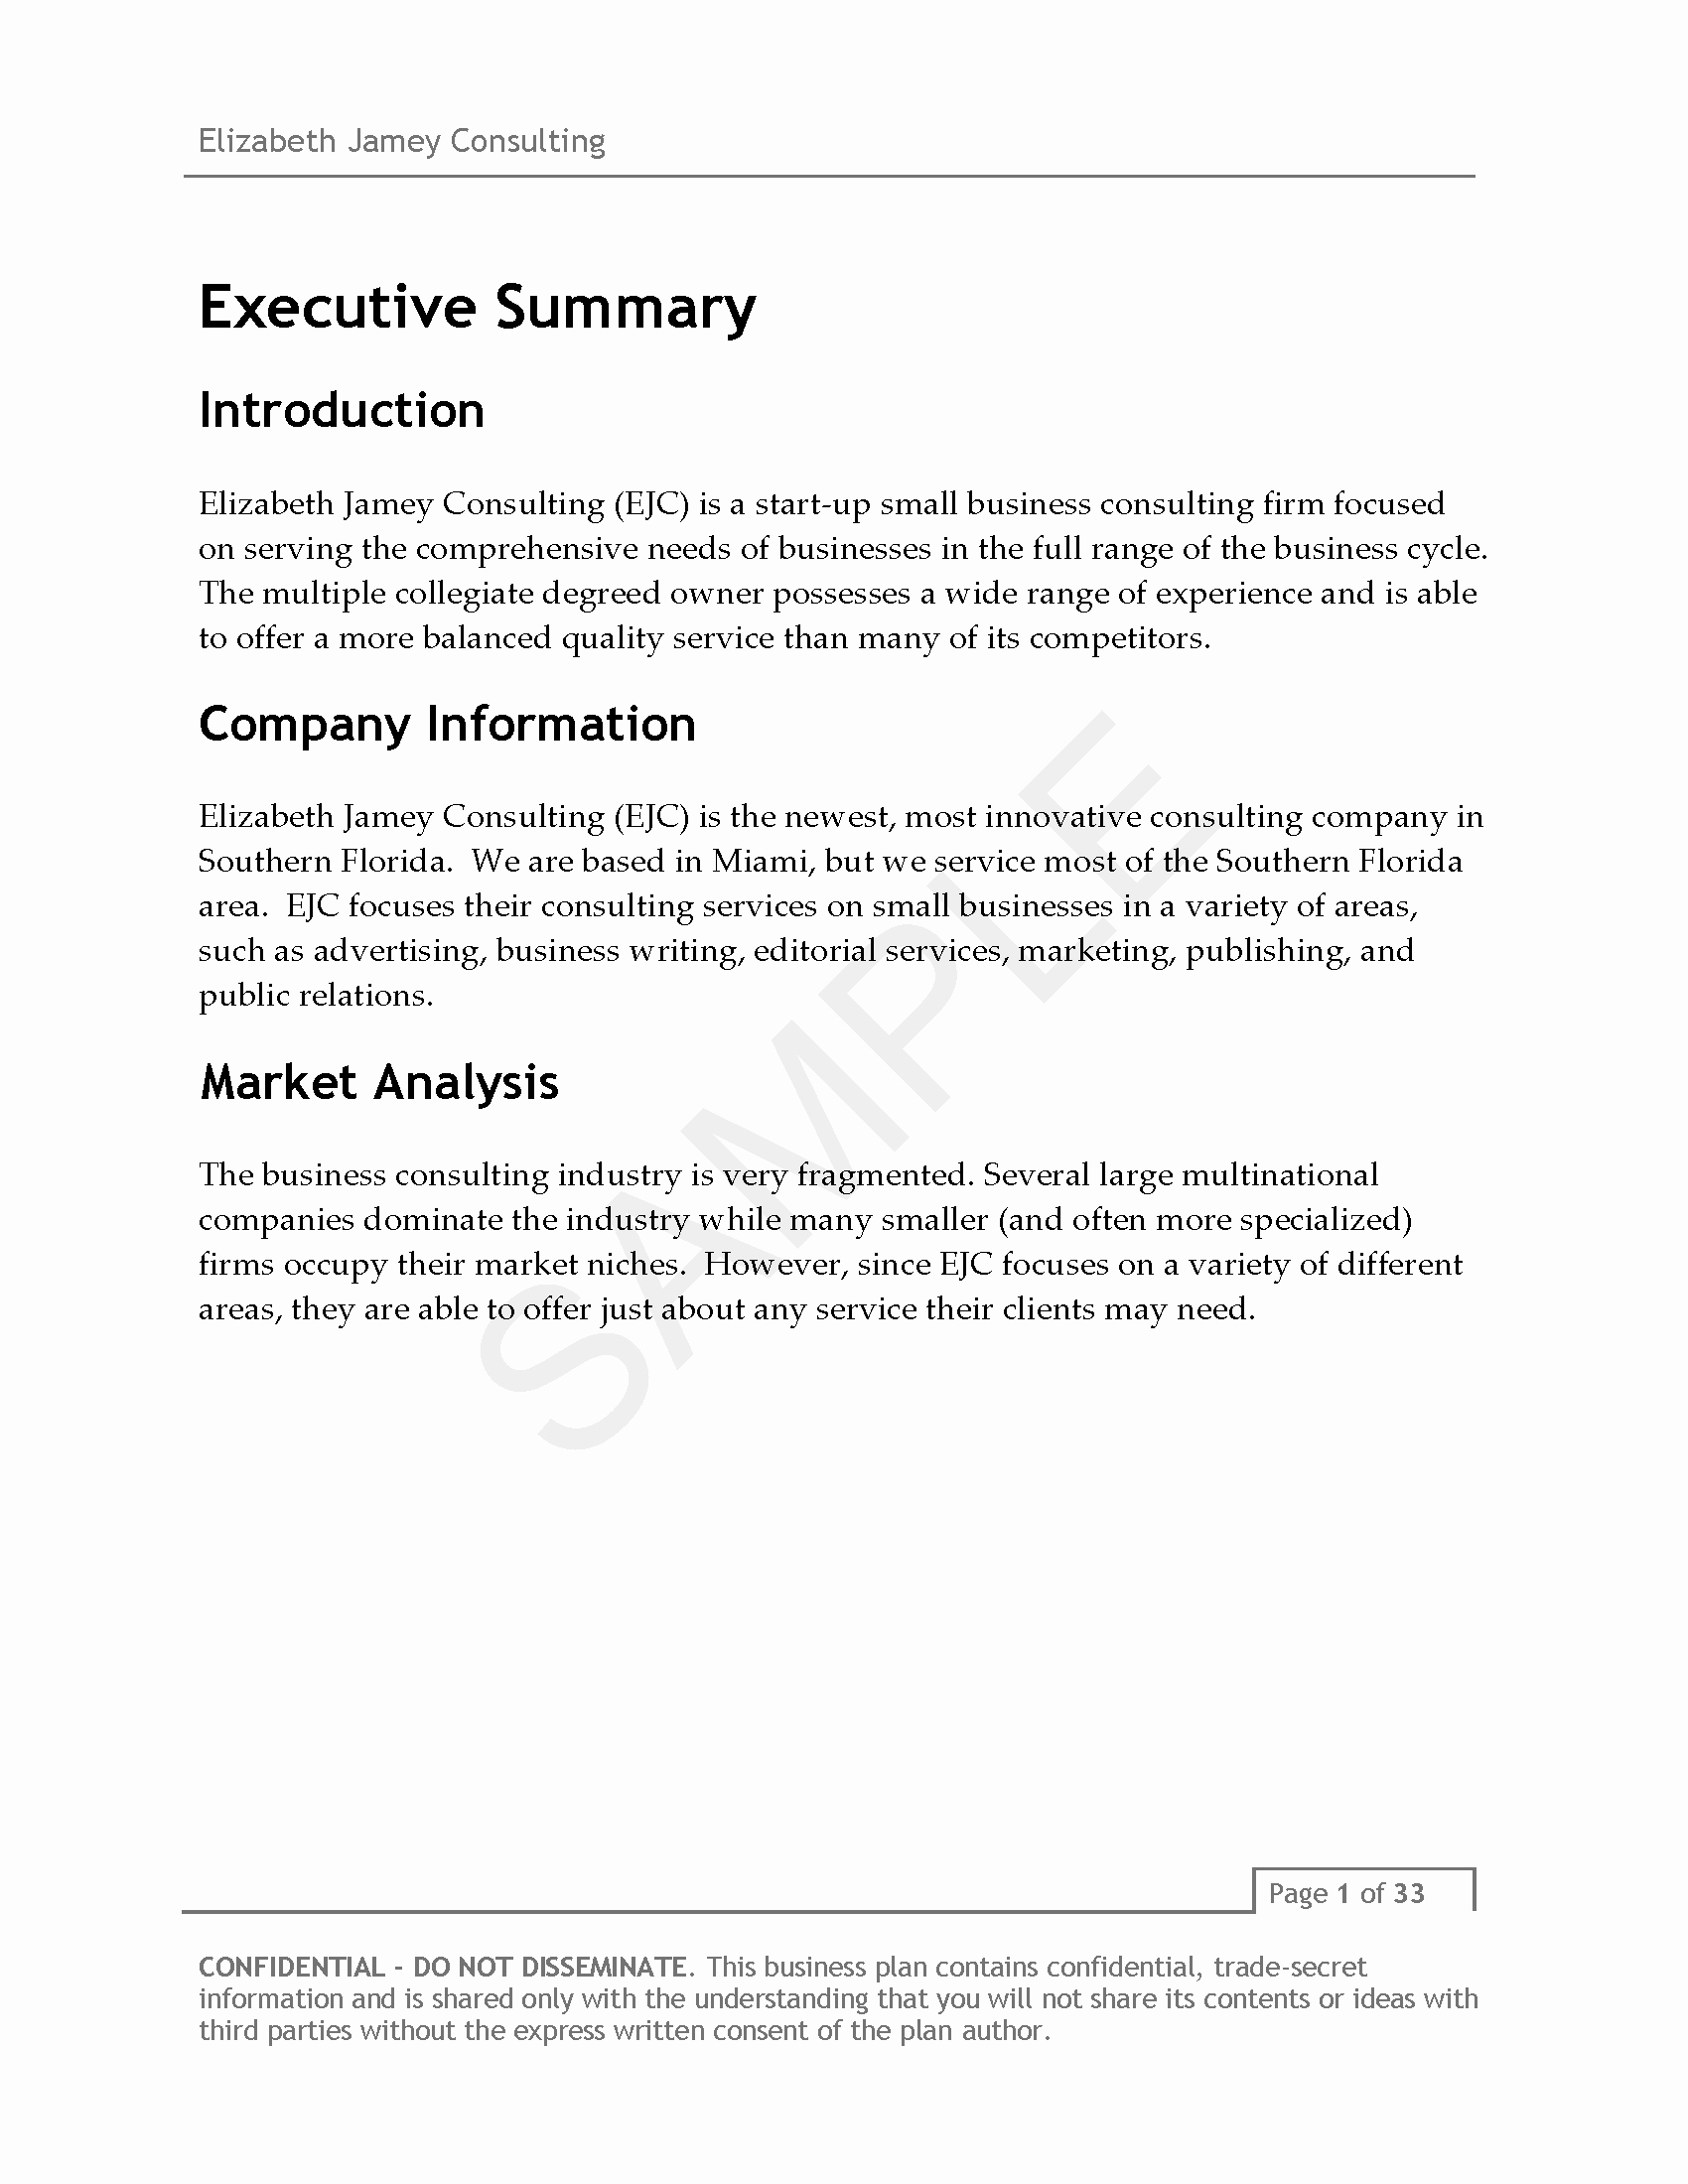 Elizabeth Jamey Consulting Business Plan V3 Page 04